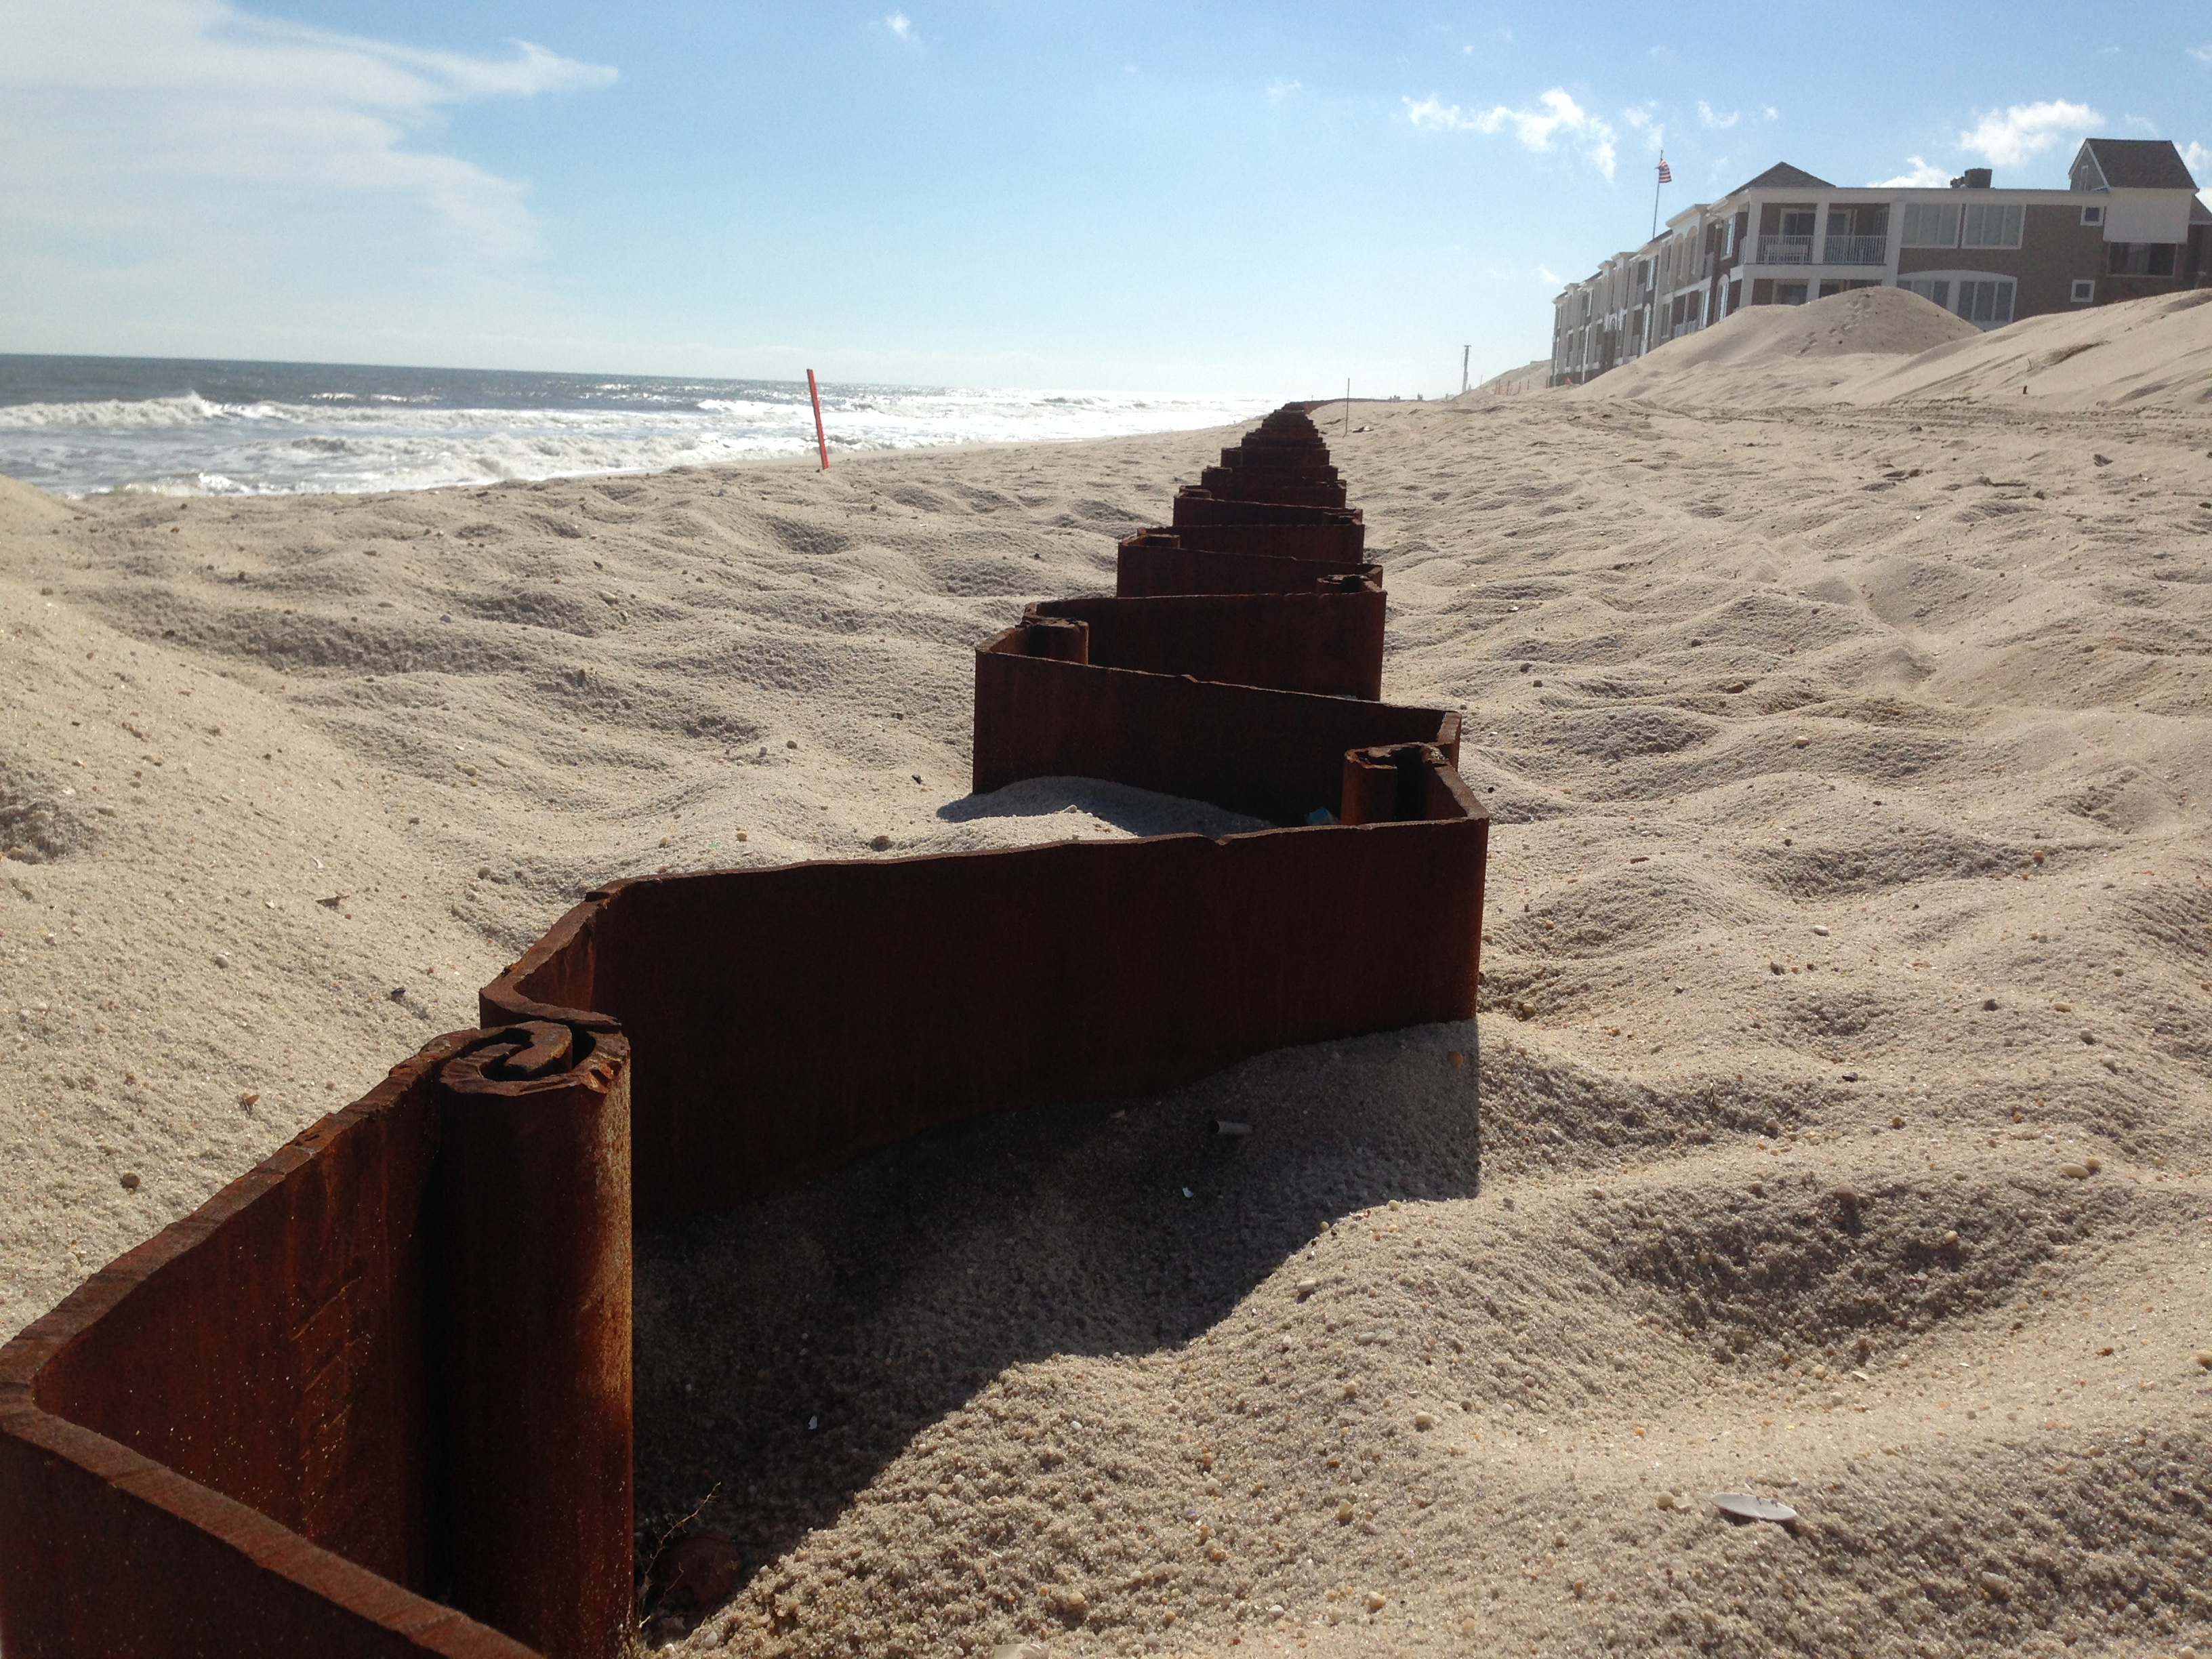 Sheetpile installed at Brick Beach III. The sheet pile will eventually be capped and buried in sand dunes. (Photo: Daniel Nee)